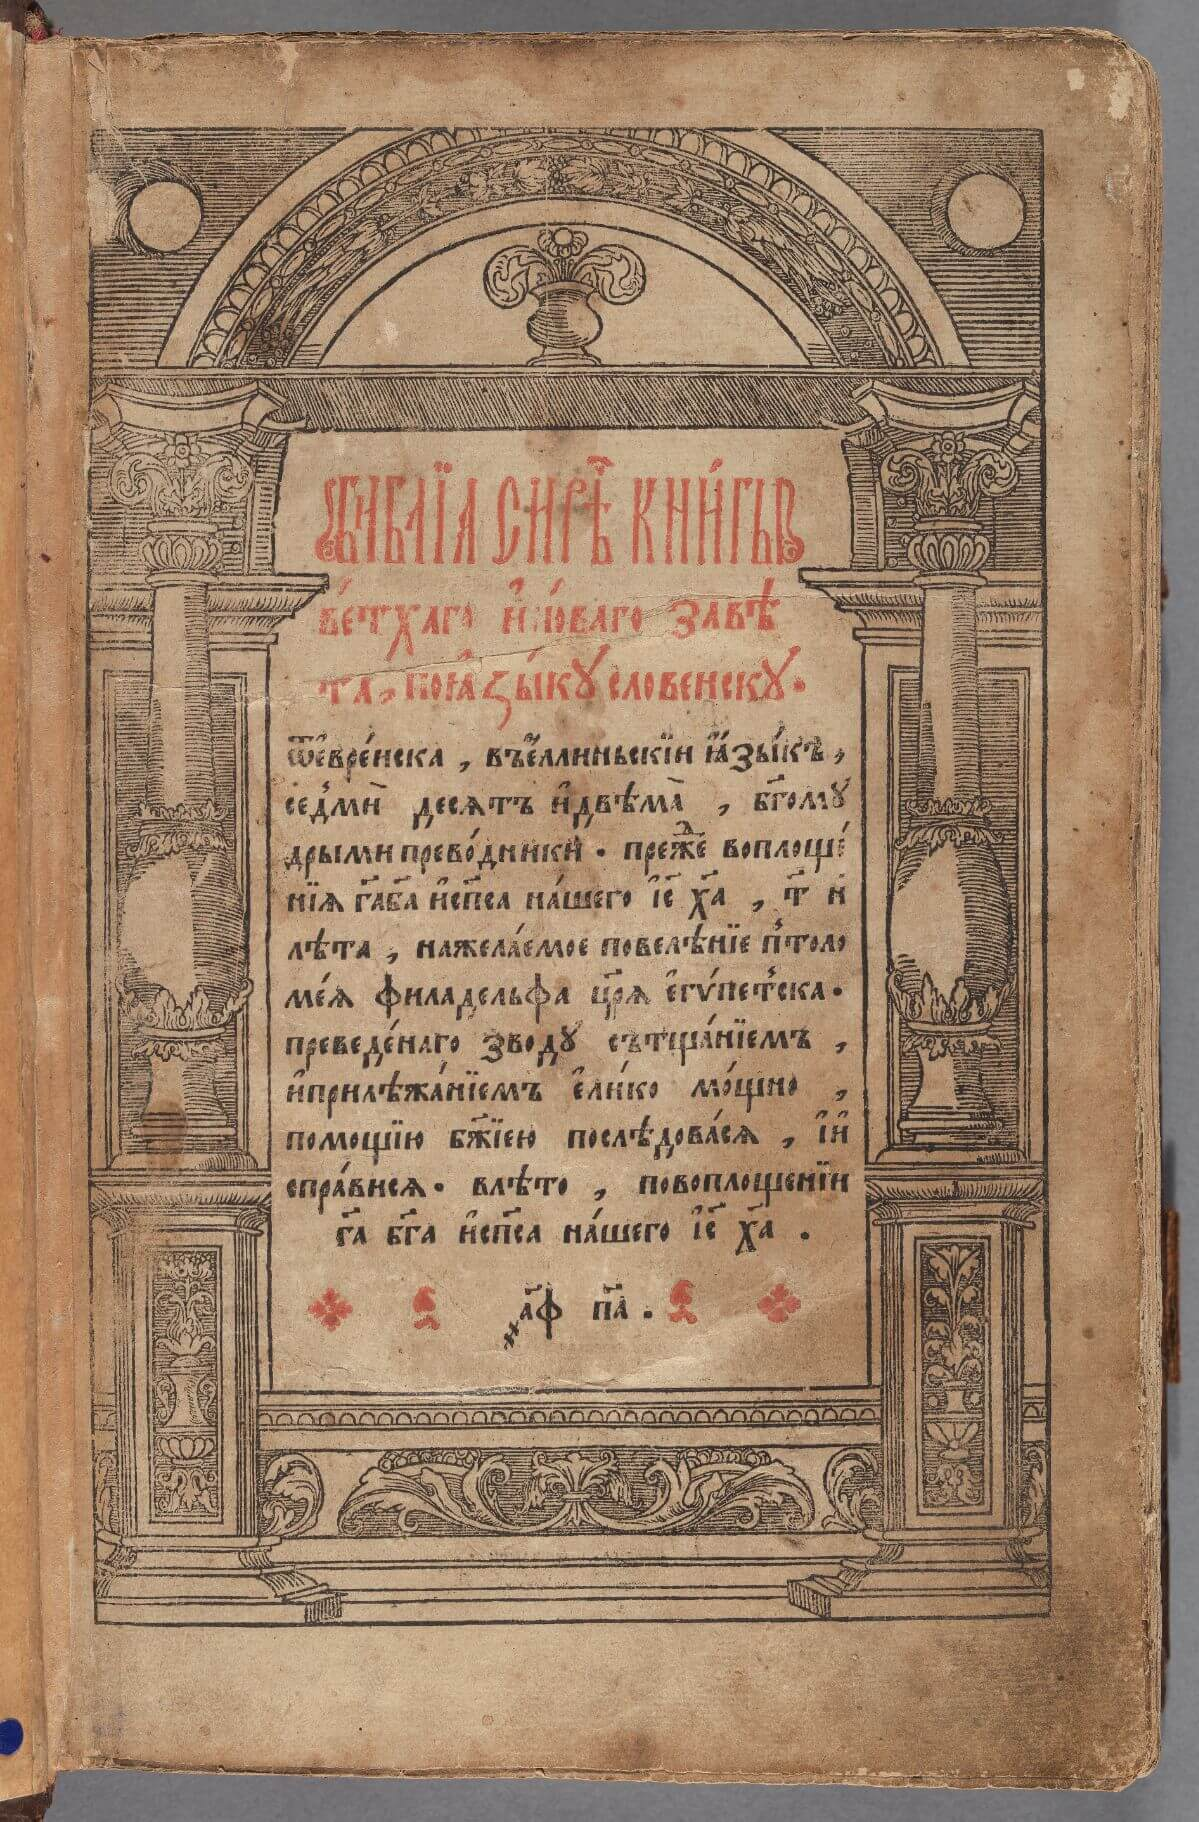 The Ostroh Bible is the first complete edition of the Bible printed in Cyrillic, made at the behest of Prince Konstantin Ostrogski.